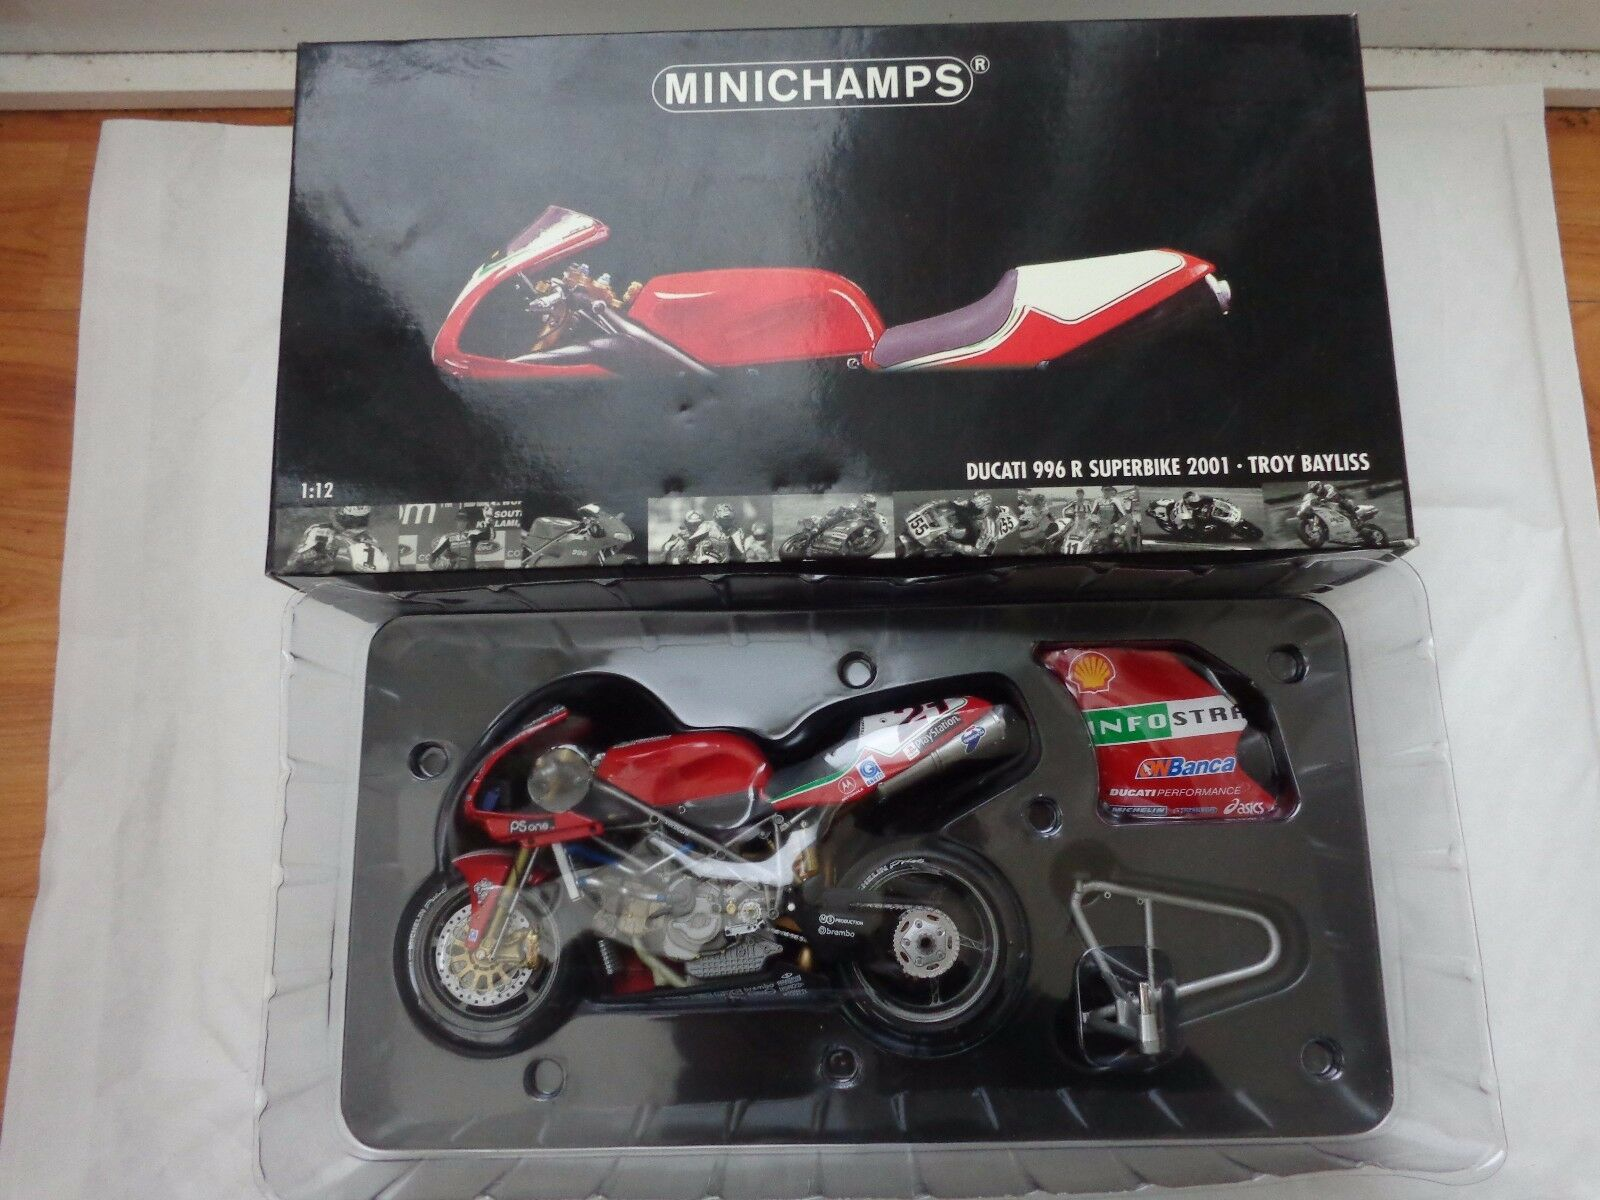 122011221 MINICHAMPS 1 12 DUCATI 996R SUPERBIKE WSB 2001 - TROY BAYLISS BIKE